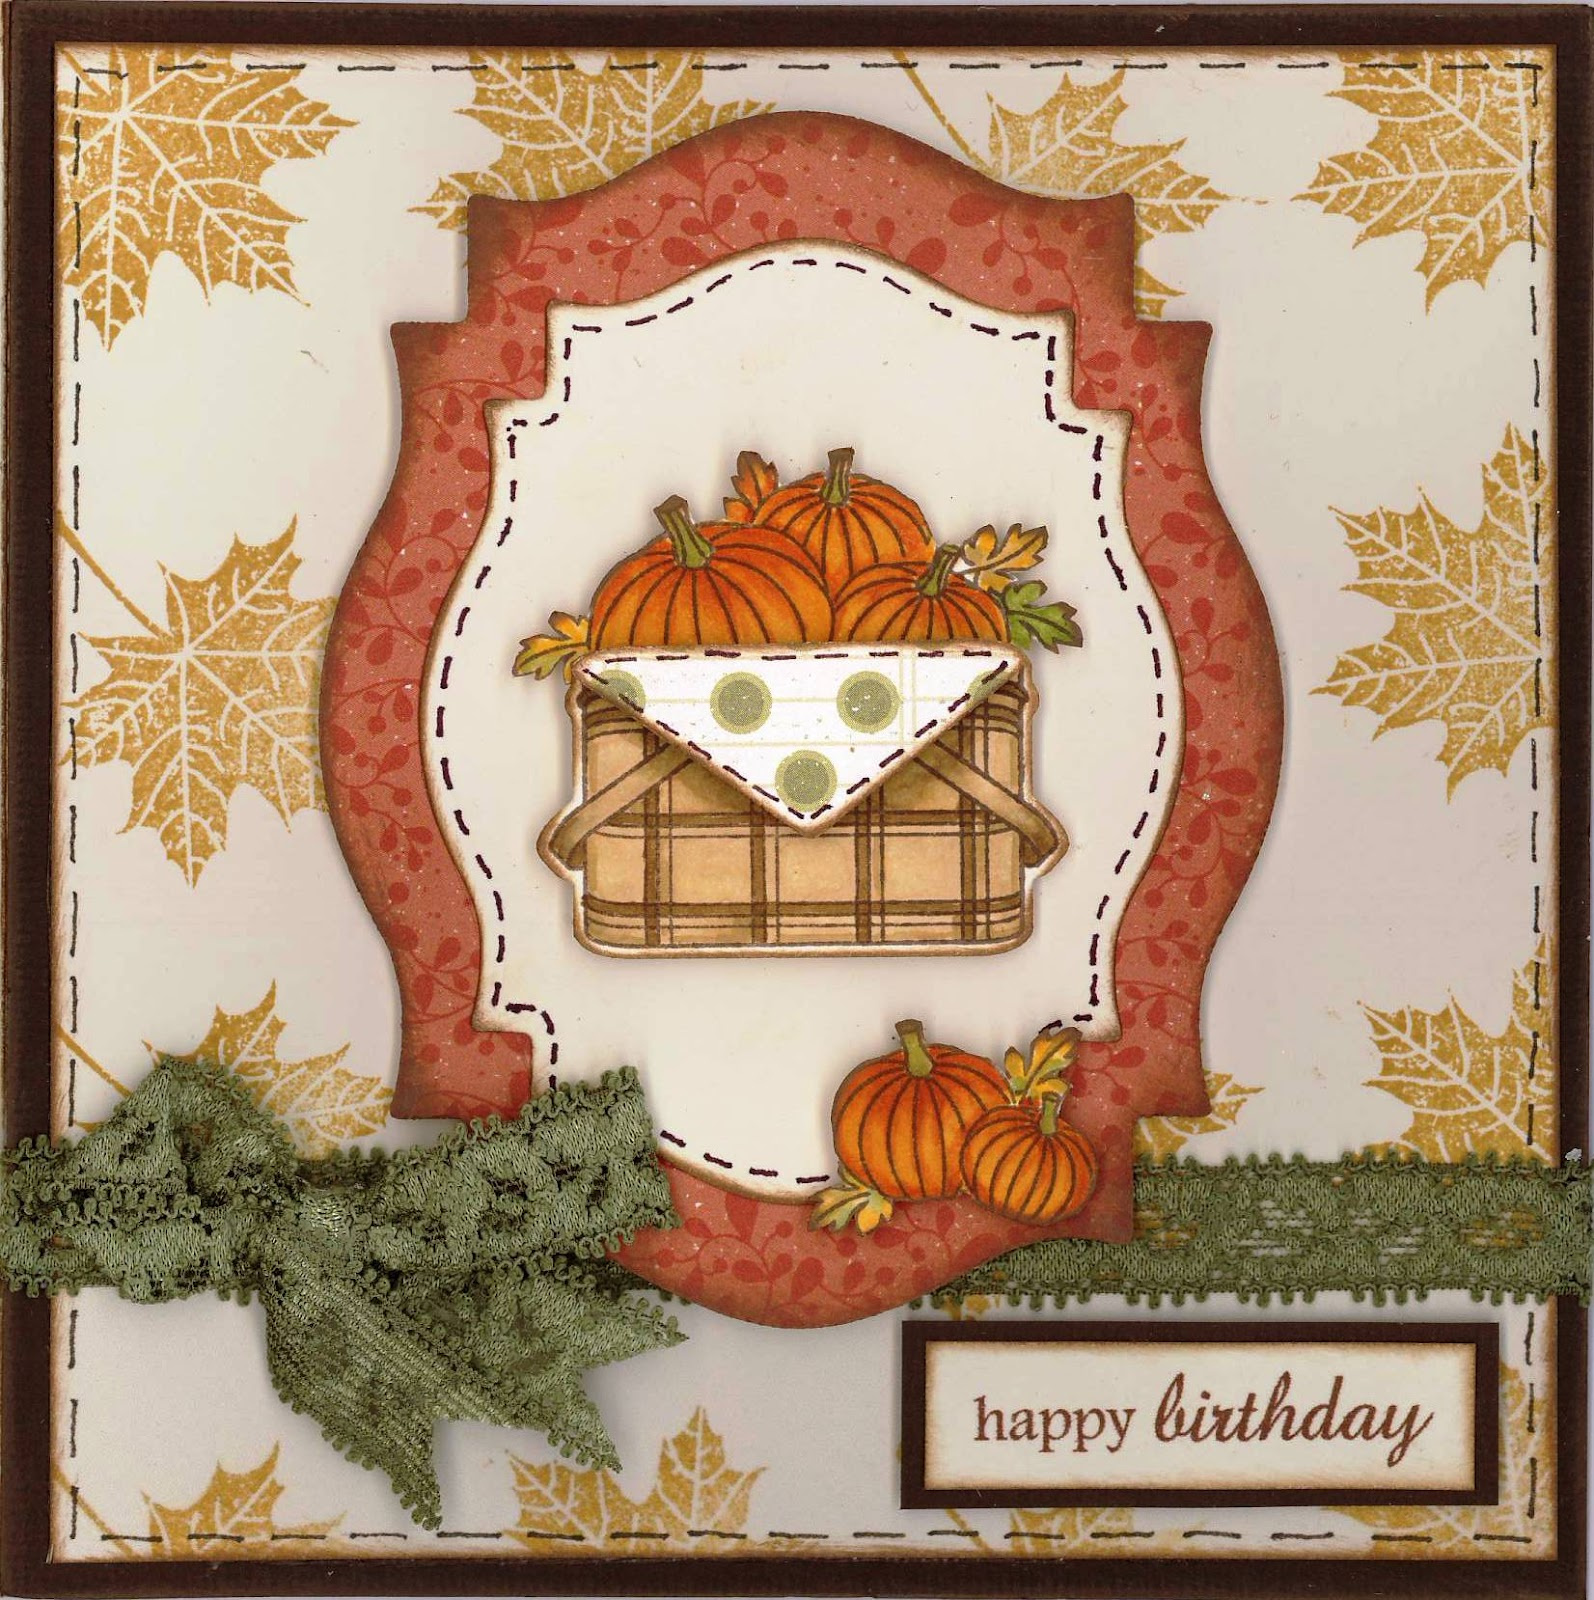 Chatterbox Creations SisterinLaw Birthdays in October 2012!